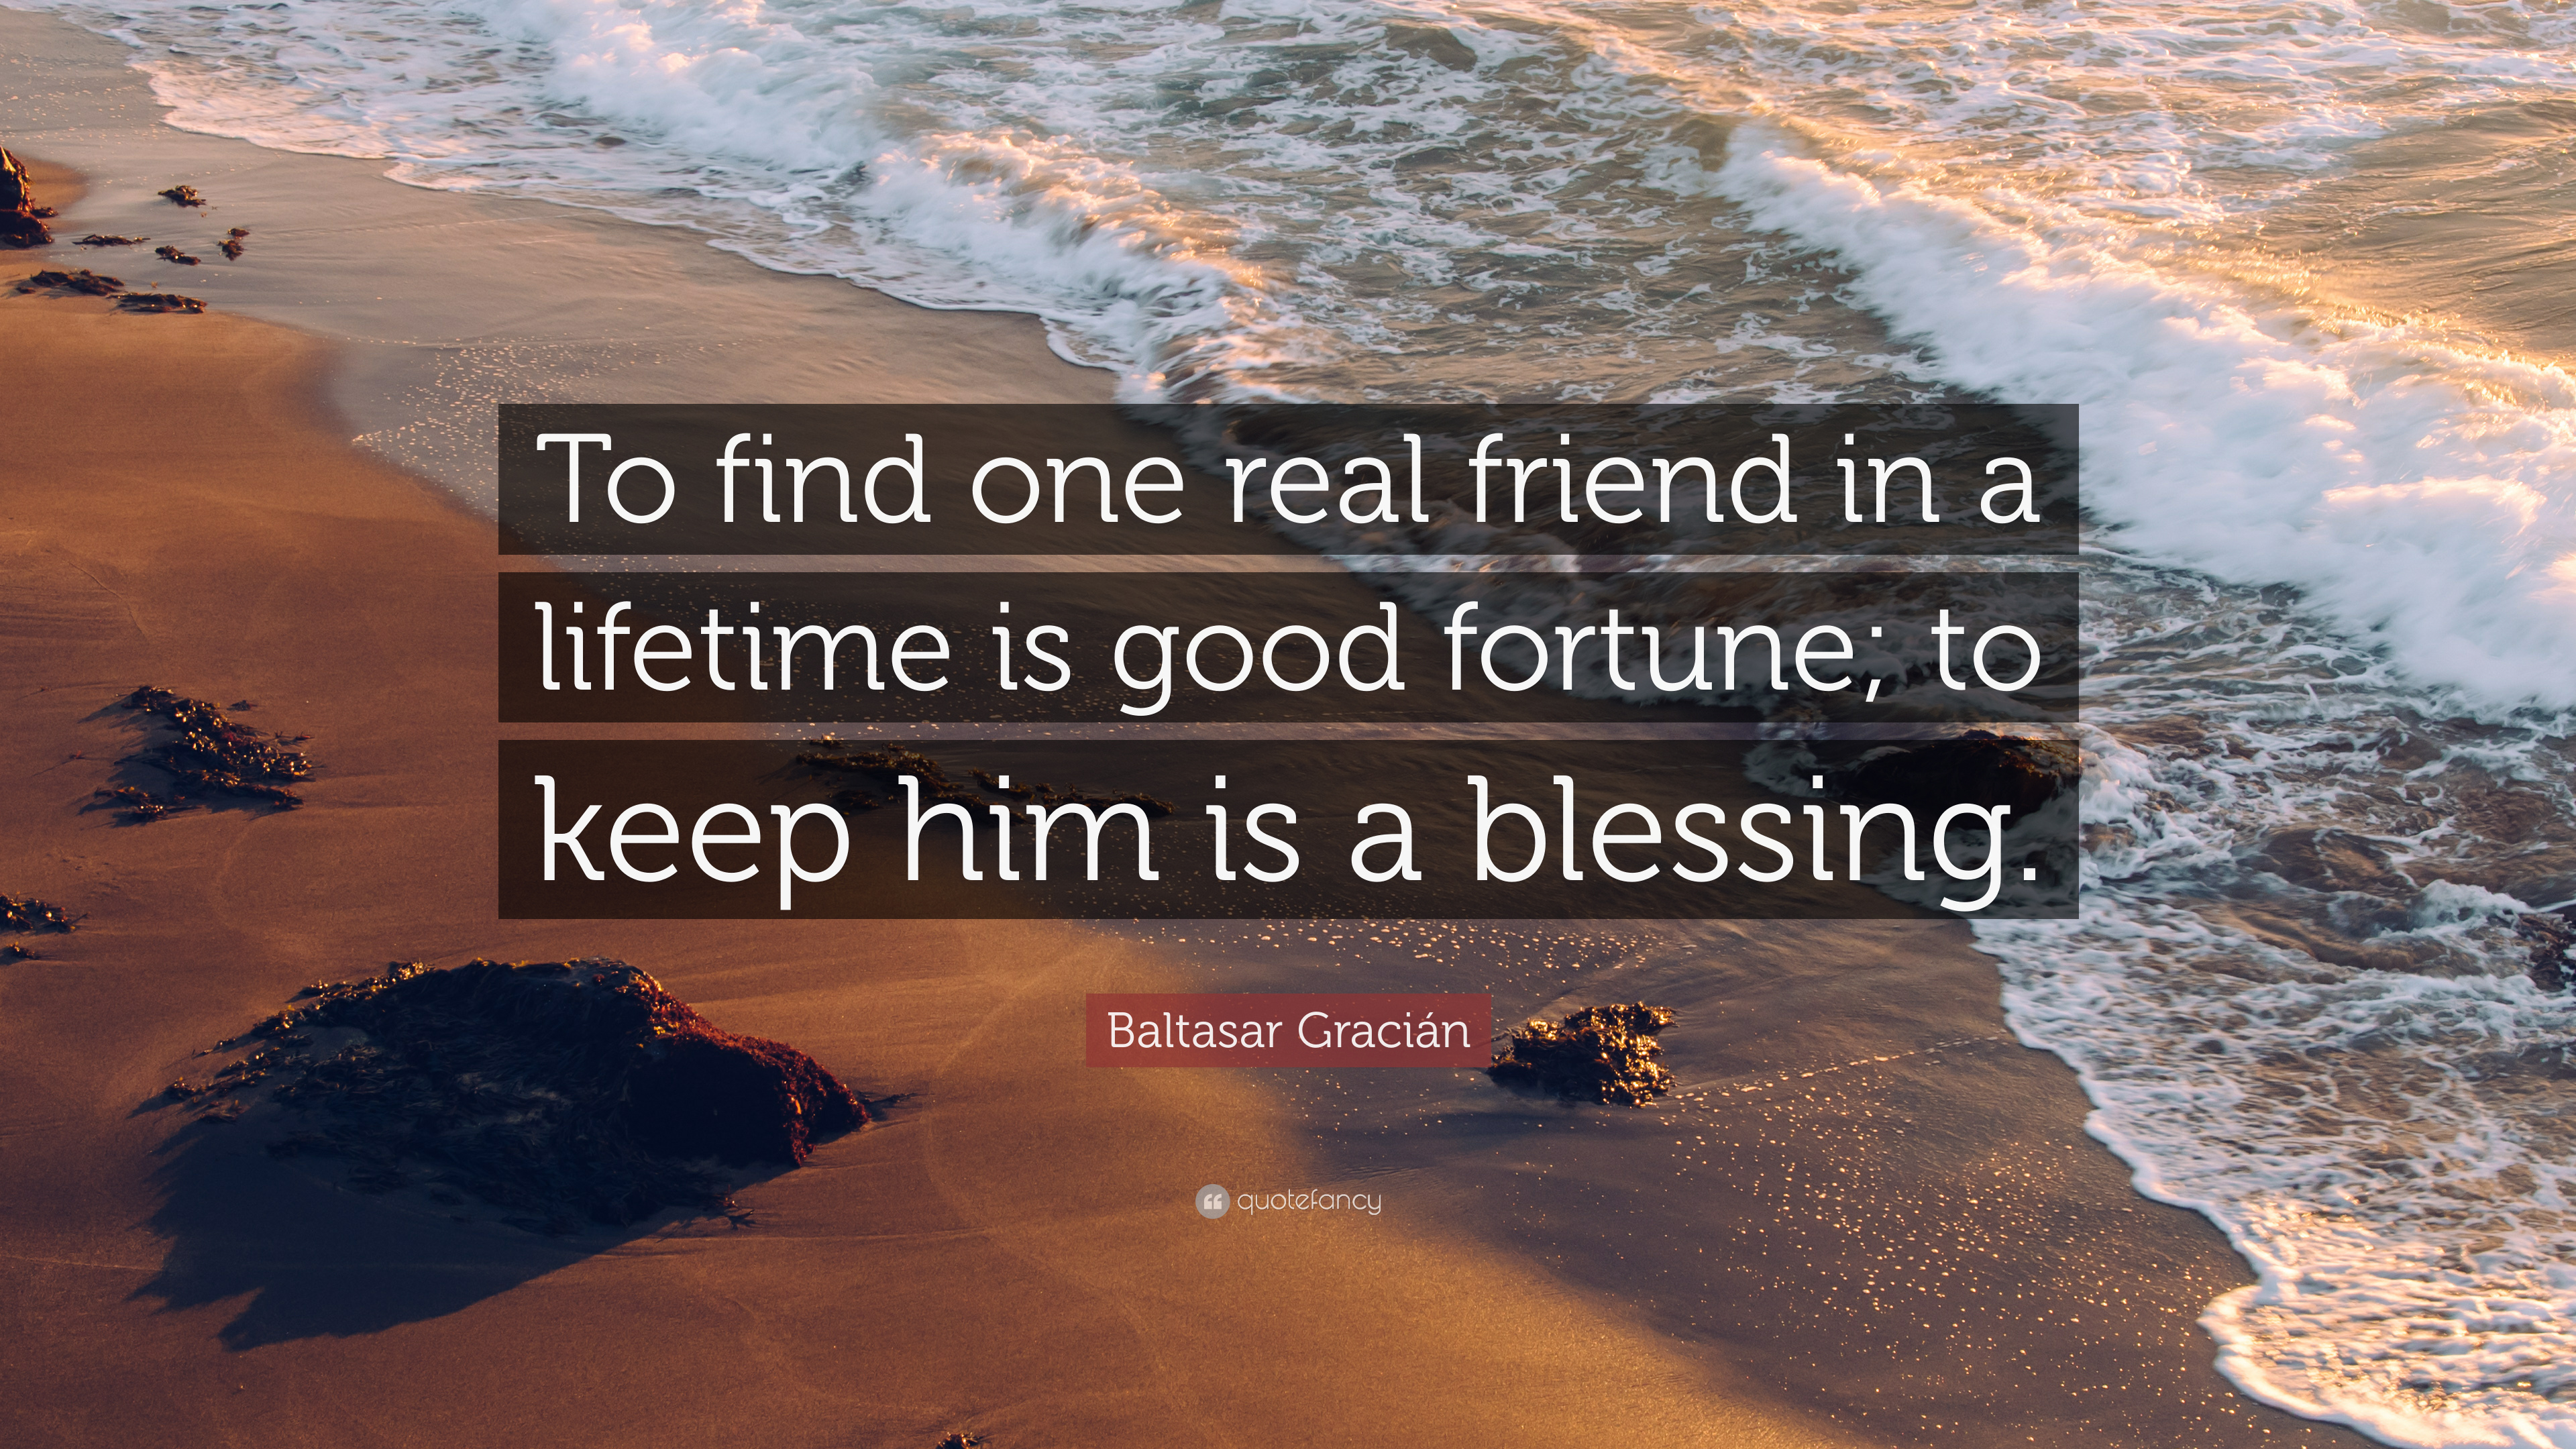 Baltasar Gracian Quote To Find One Real Friend In A Lifetime Is